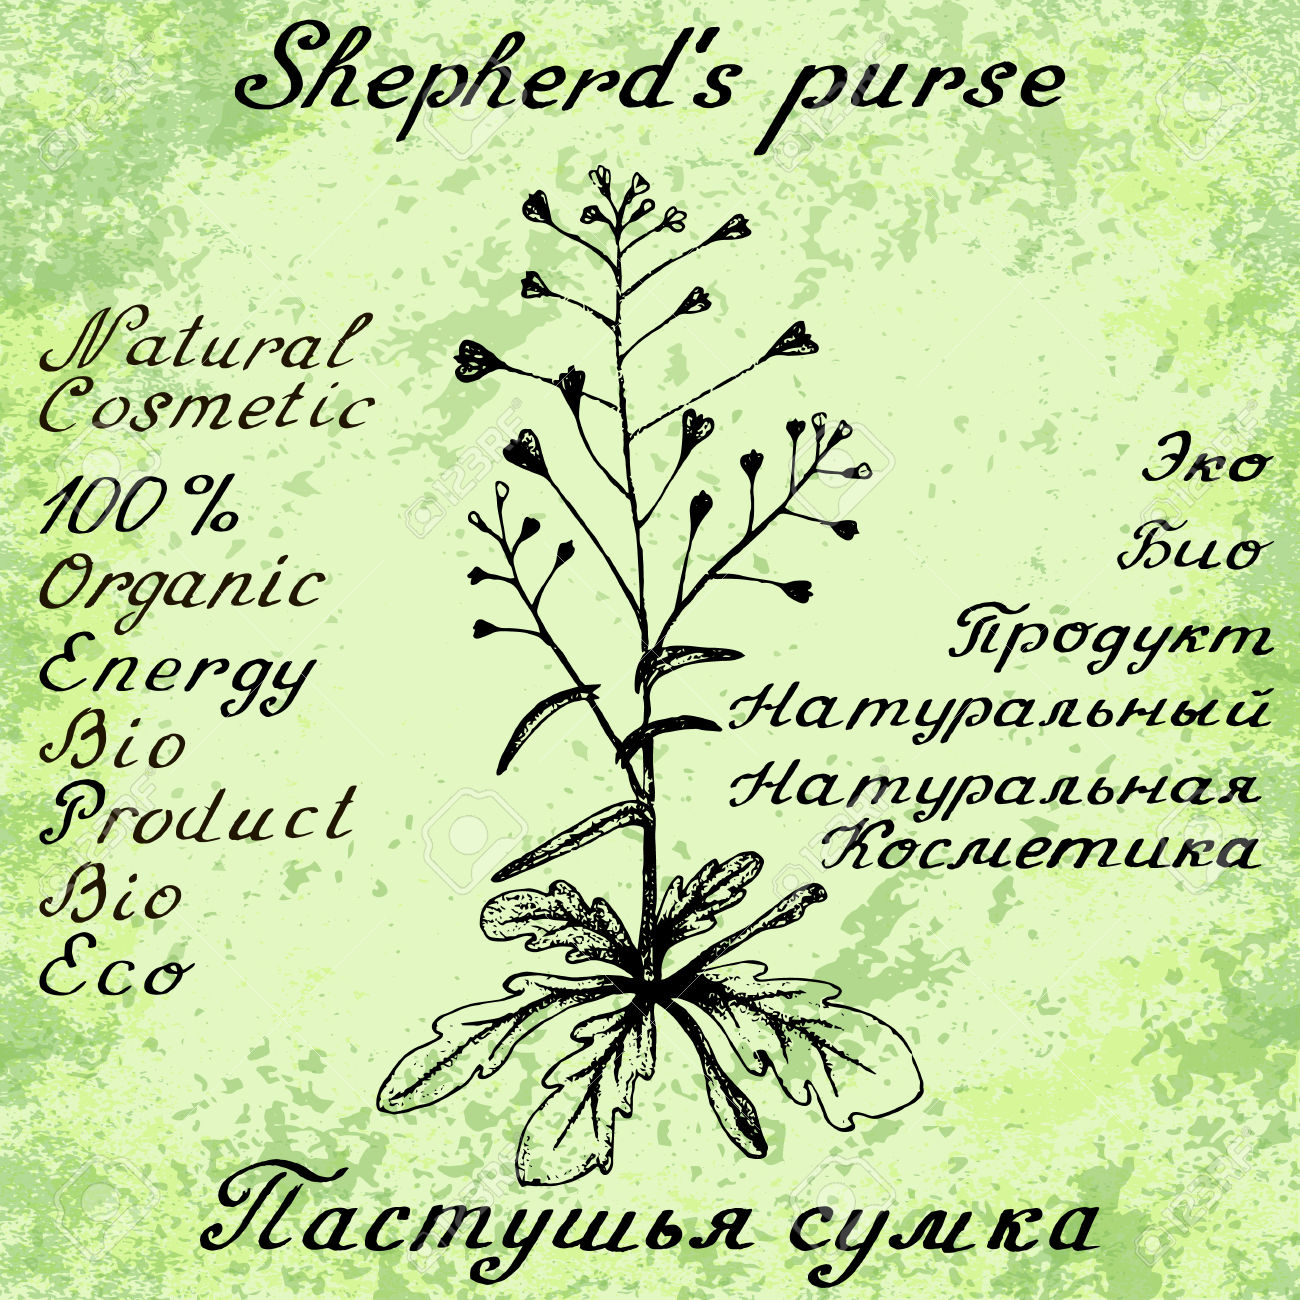 Shepherd's Purse Drawn Sketch Botanical Illustration. Illustation.